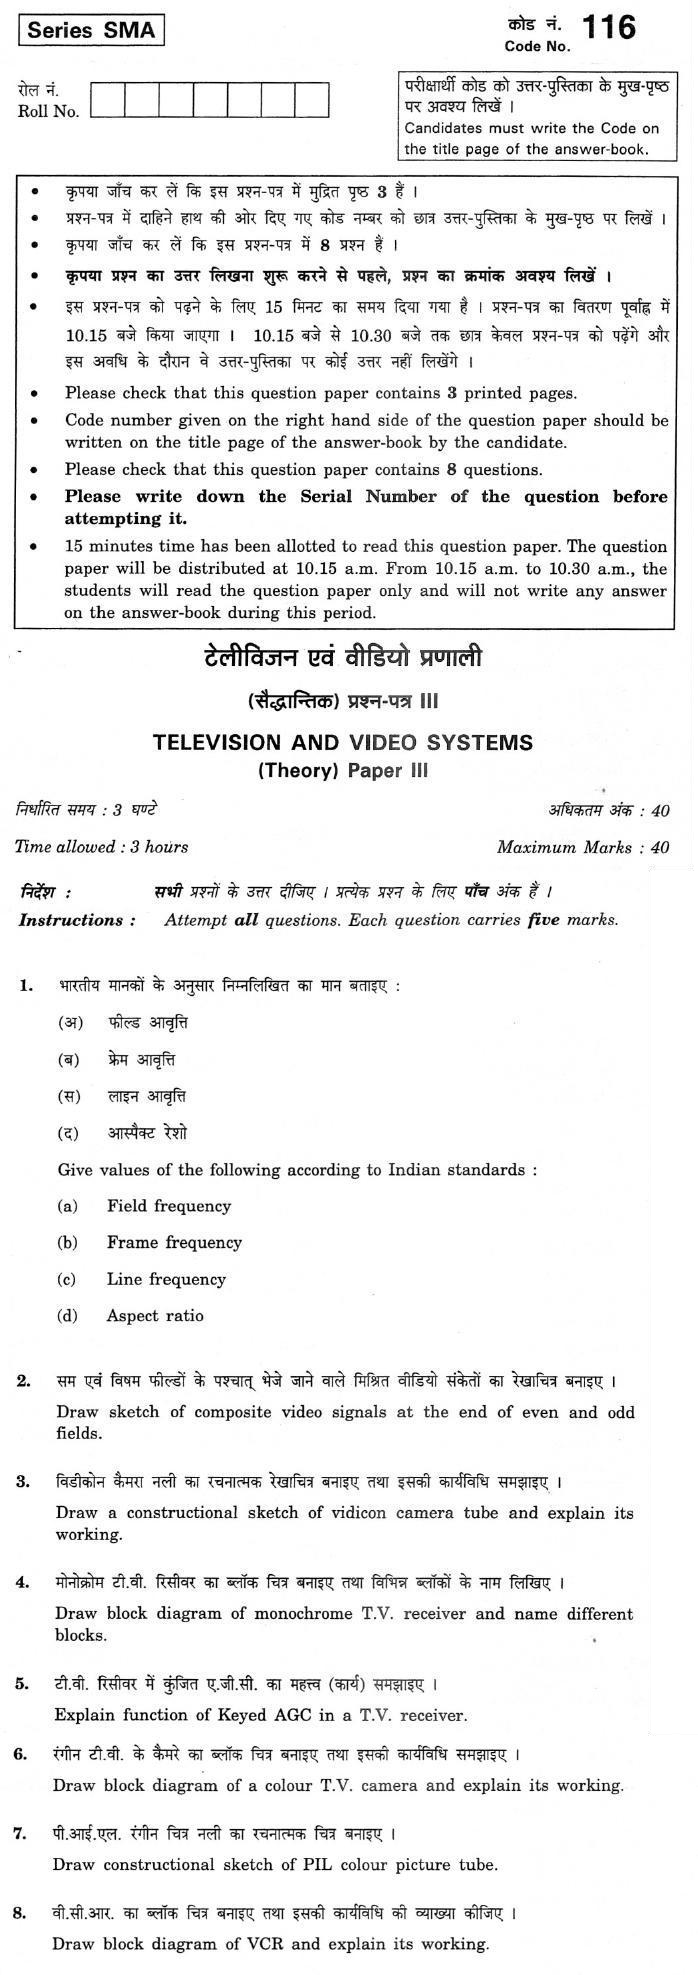 CBSE Class XII Previous Year Question Paper 2012 Television and Video Systems Paper III